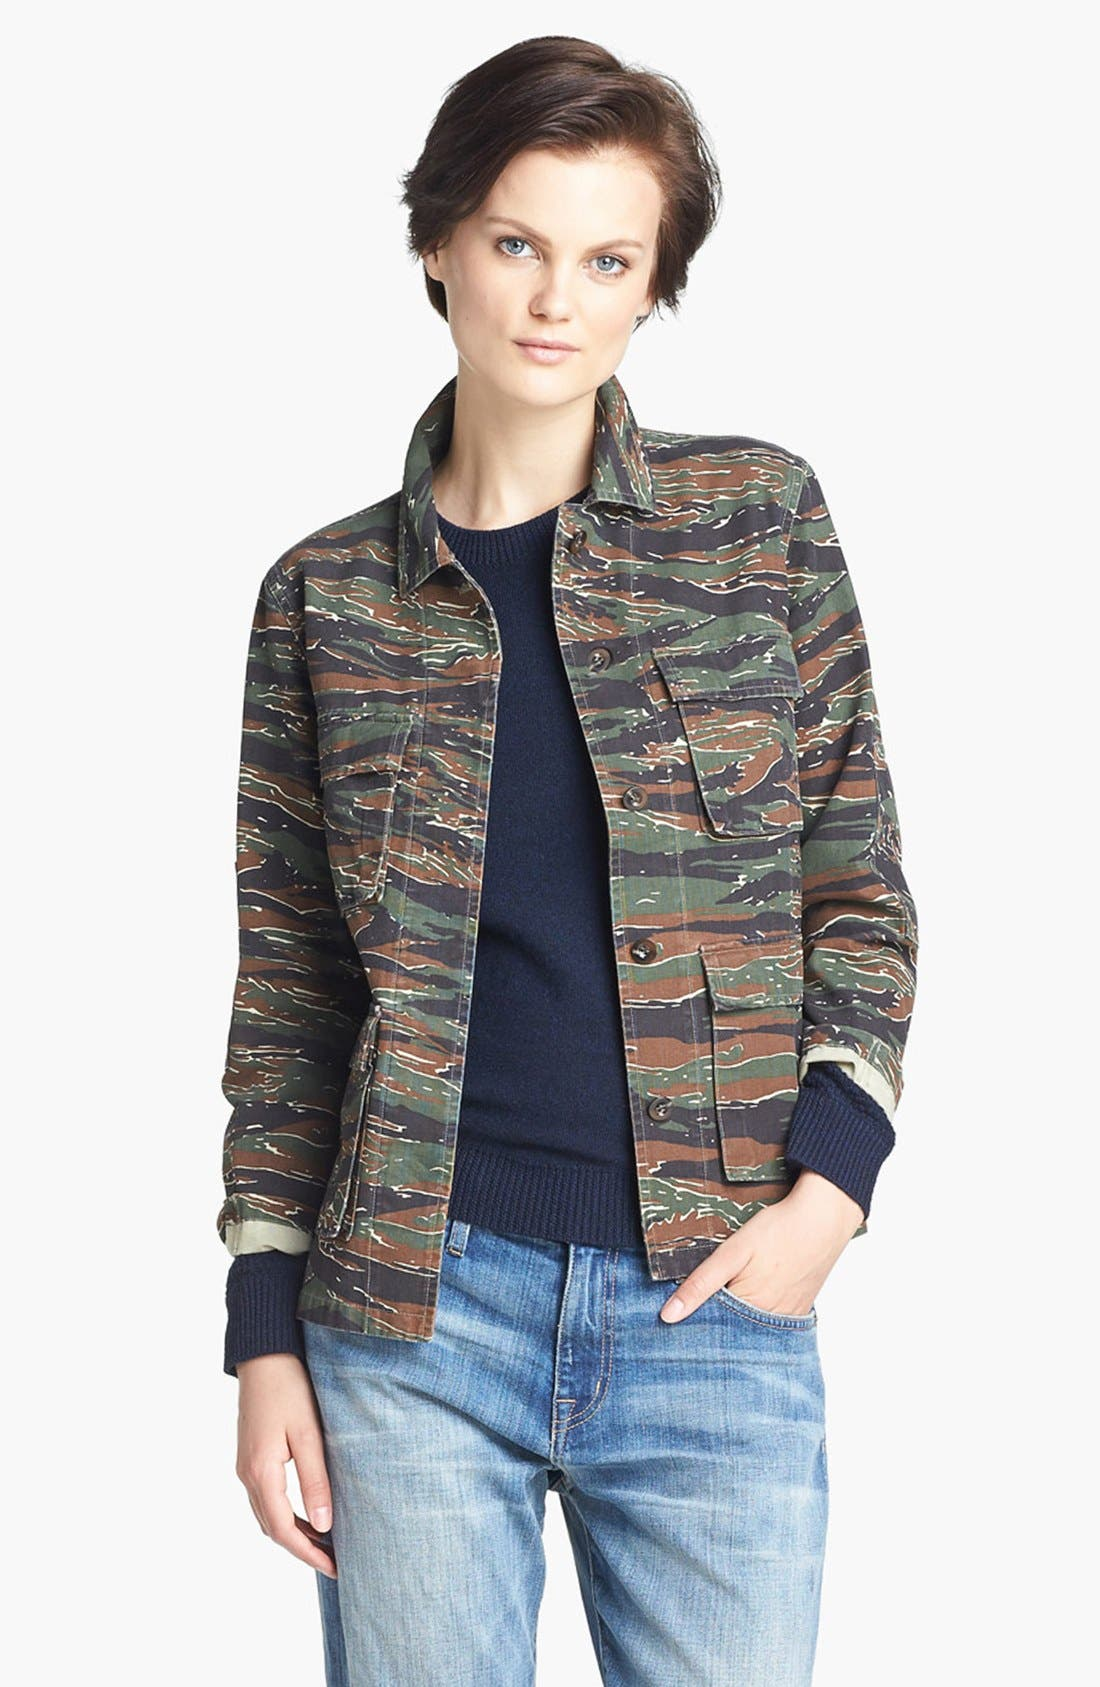 Alternate Image 1 Selected - A.P.C. Vintage Camouflage Jacket